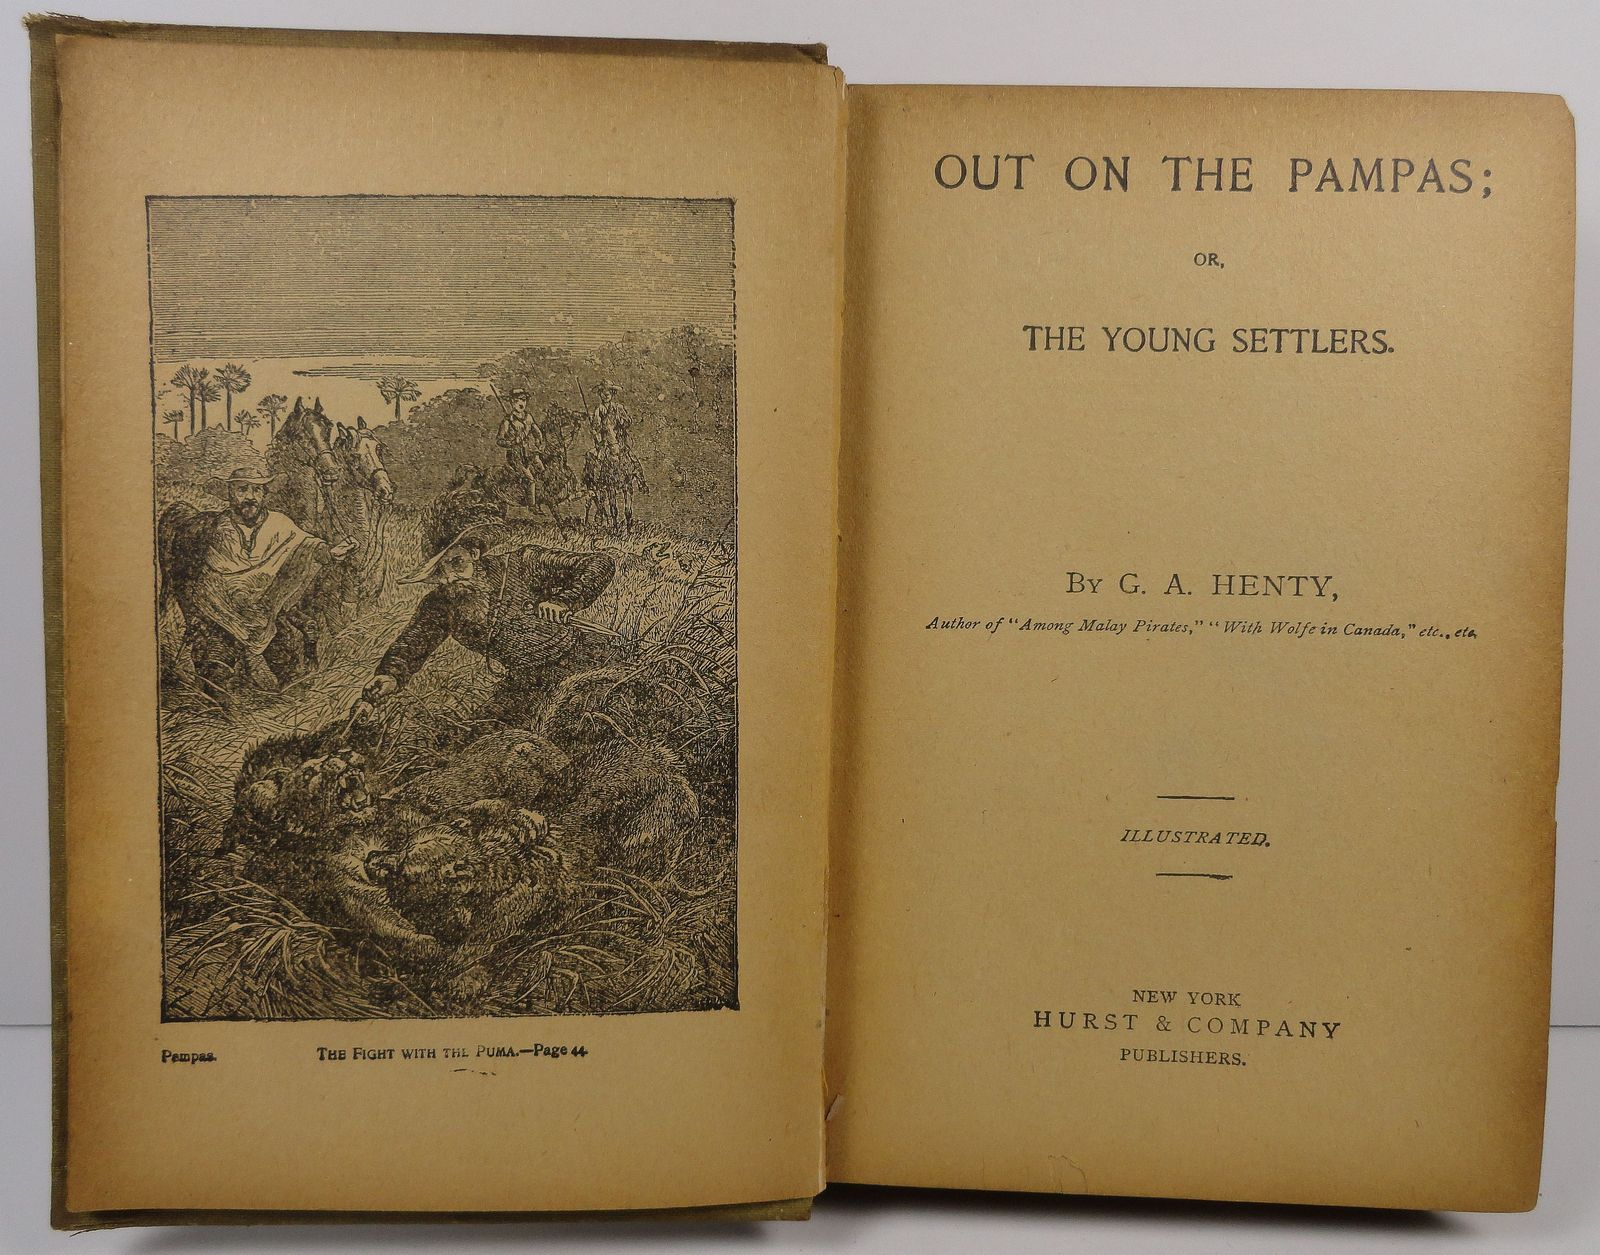 Out on the Pampas by G. A. Henty Hurst and Company